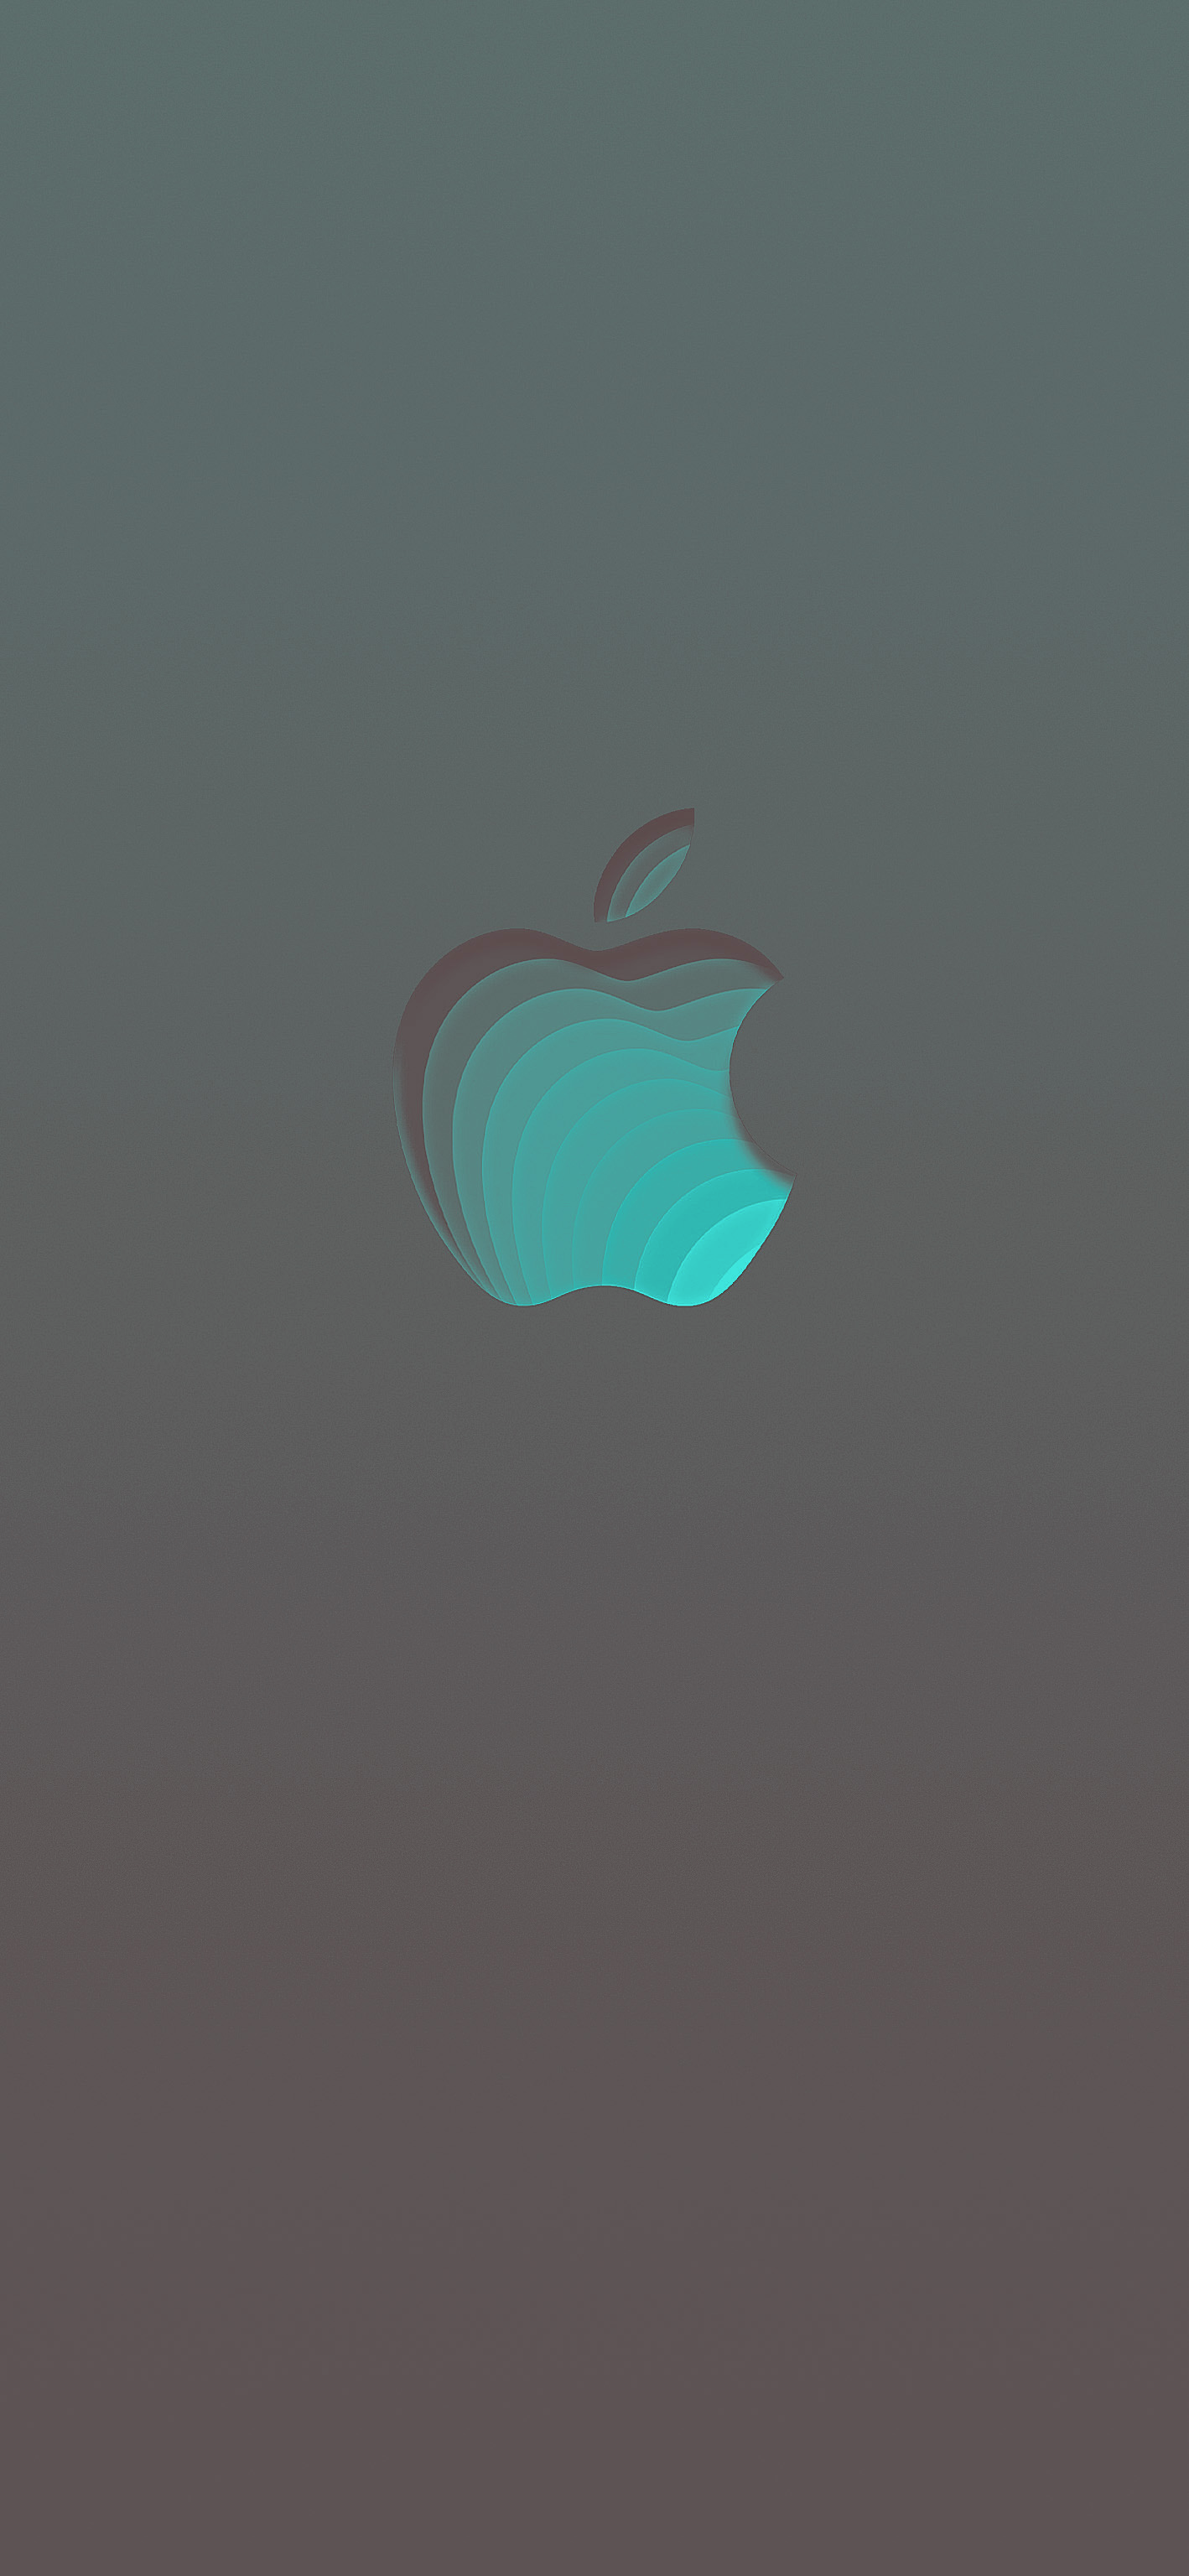 Ios13 Iphonewallpaper Apple Logo Colorful Darkmode Ios13wallpaper Ios13 I Apple Iphone Wallpaper Hd Apple Logo Wallpaper Iphone Apple Wallpaper Iphone